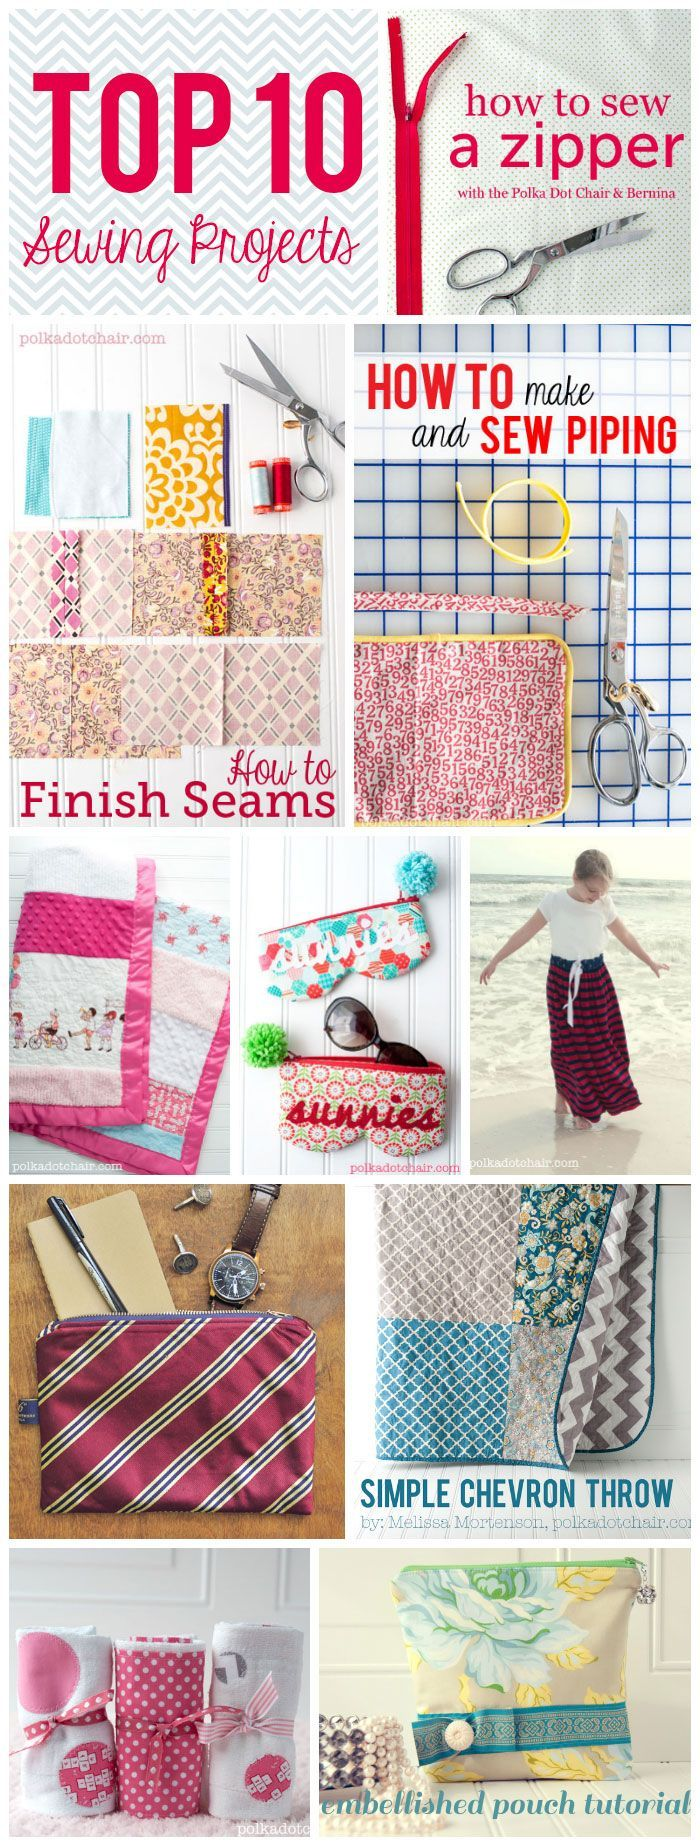 best sewing images on pinterest